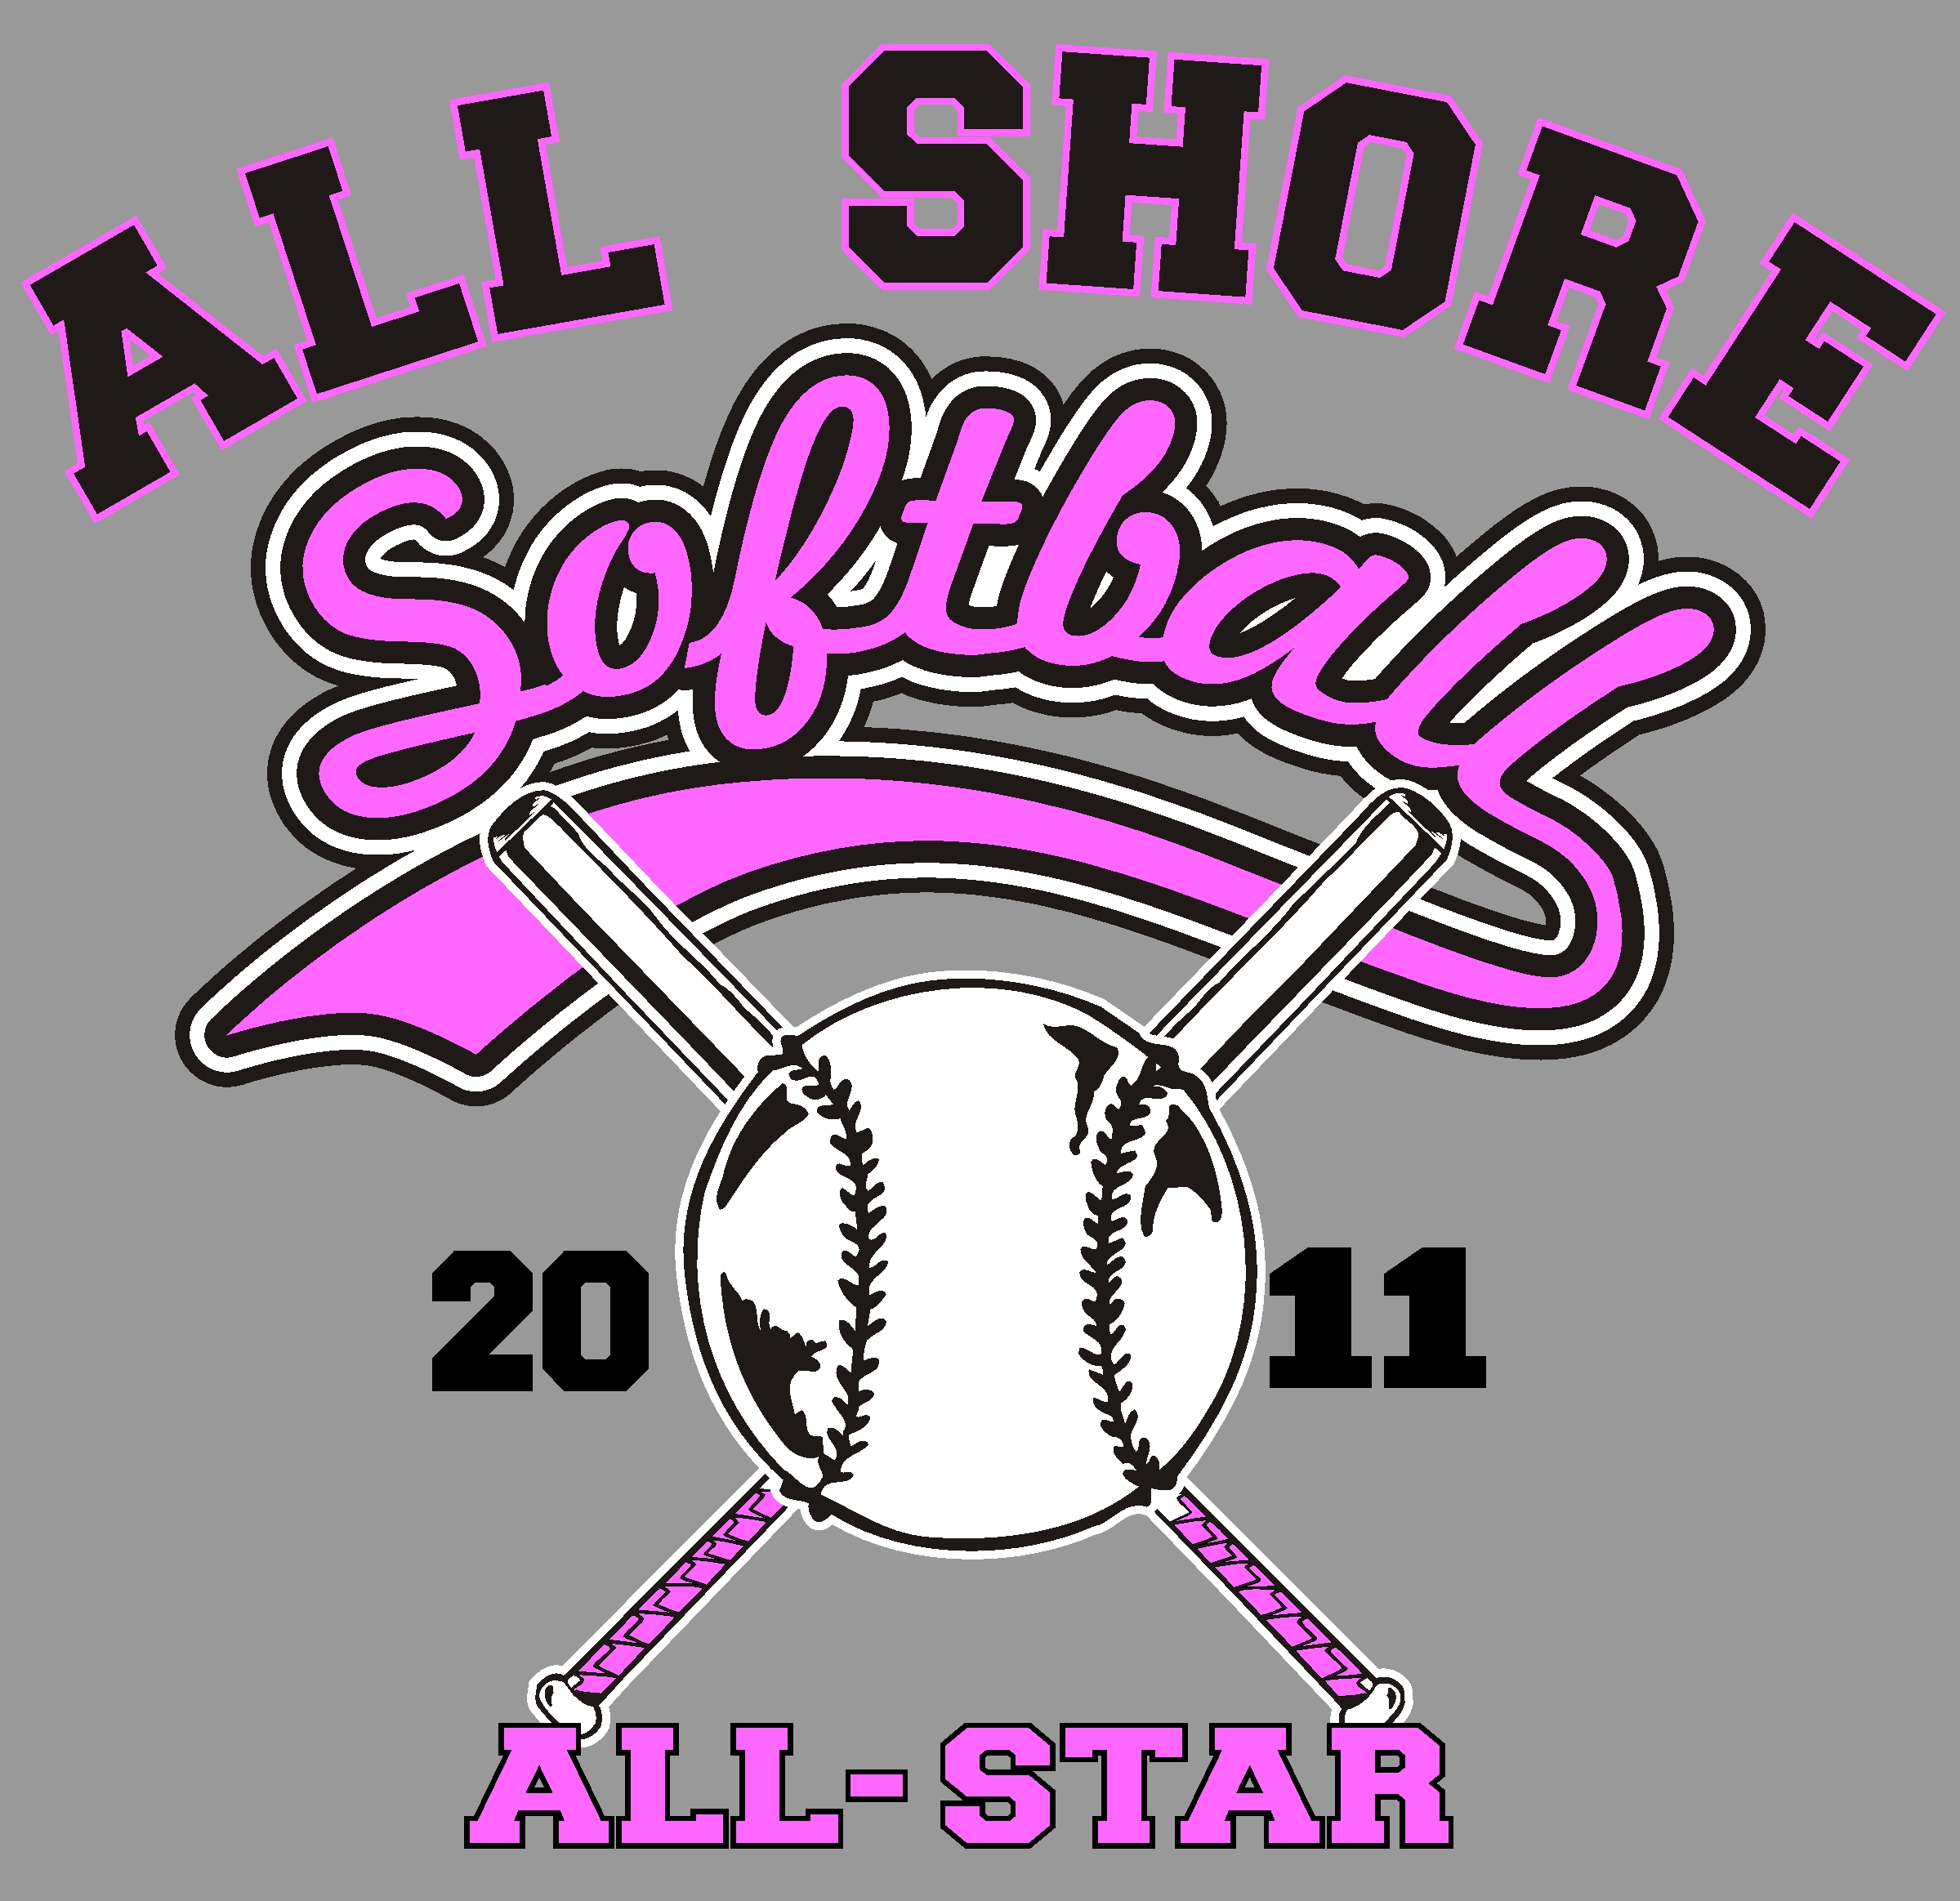 All-Shore Softball - Monmouth County, New Jersey